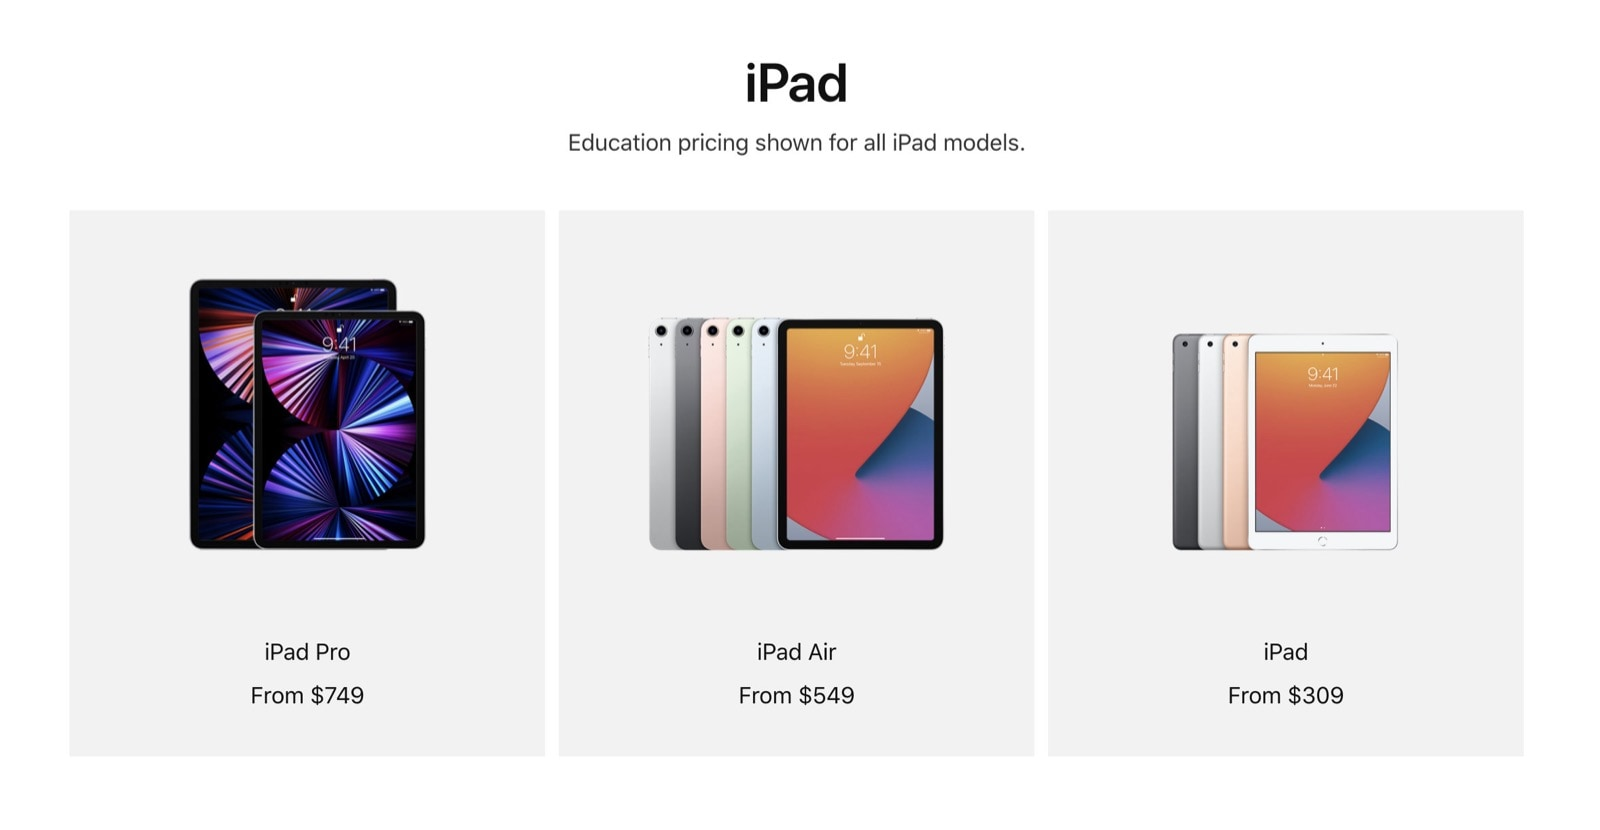 iPad Pro 2021 prices for students